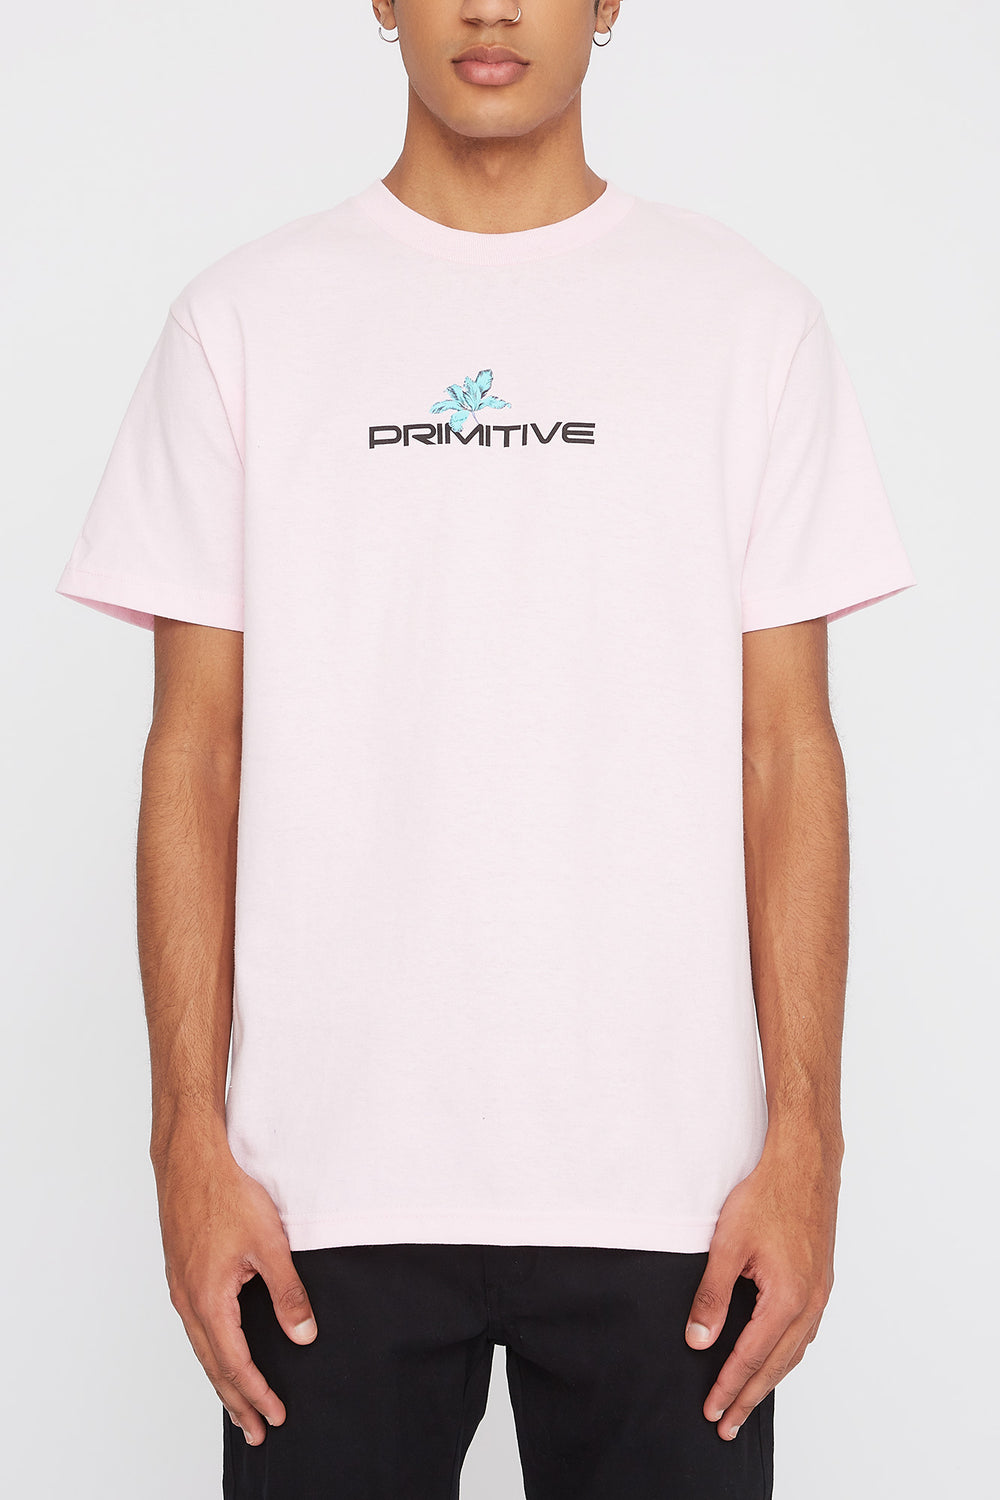 Primitive Mens Botanical Logo T-Shirt Pink